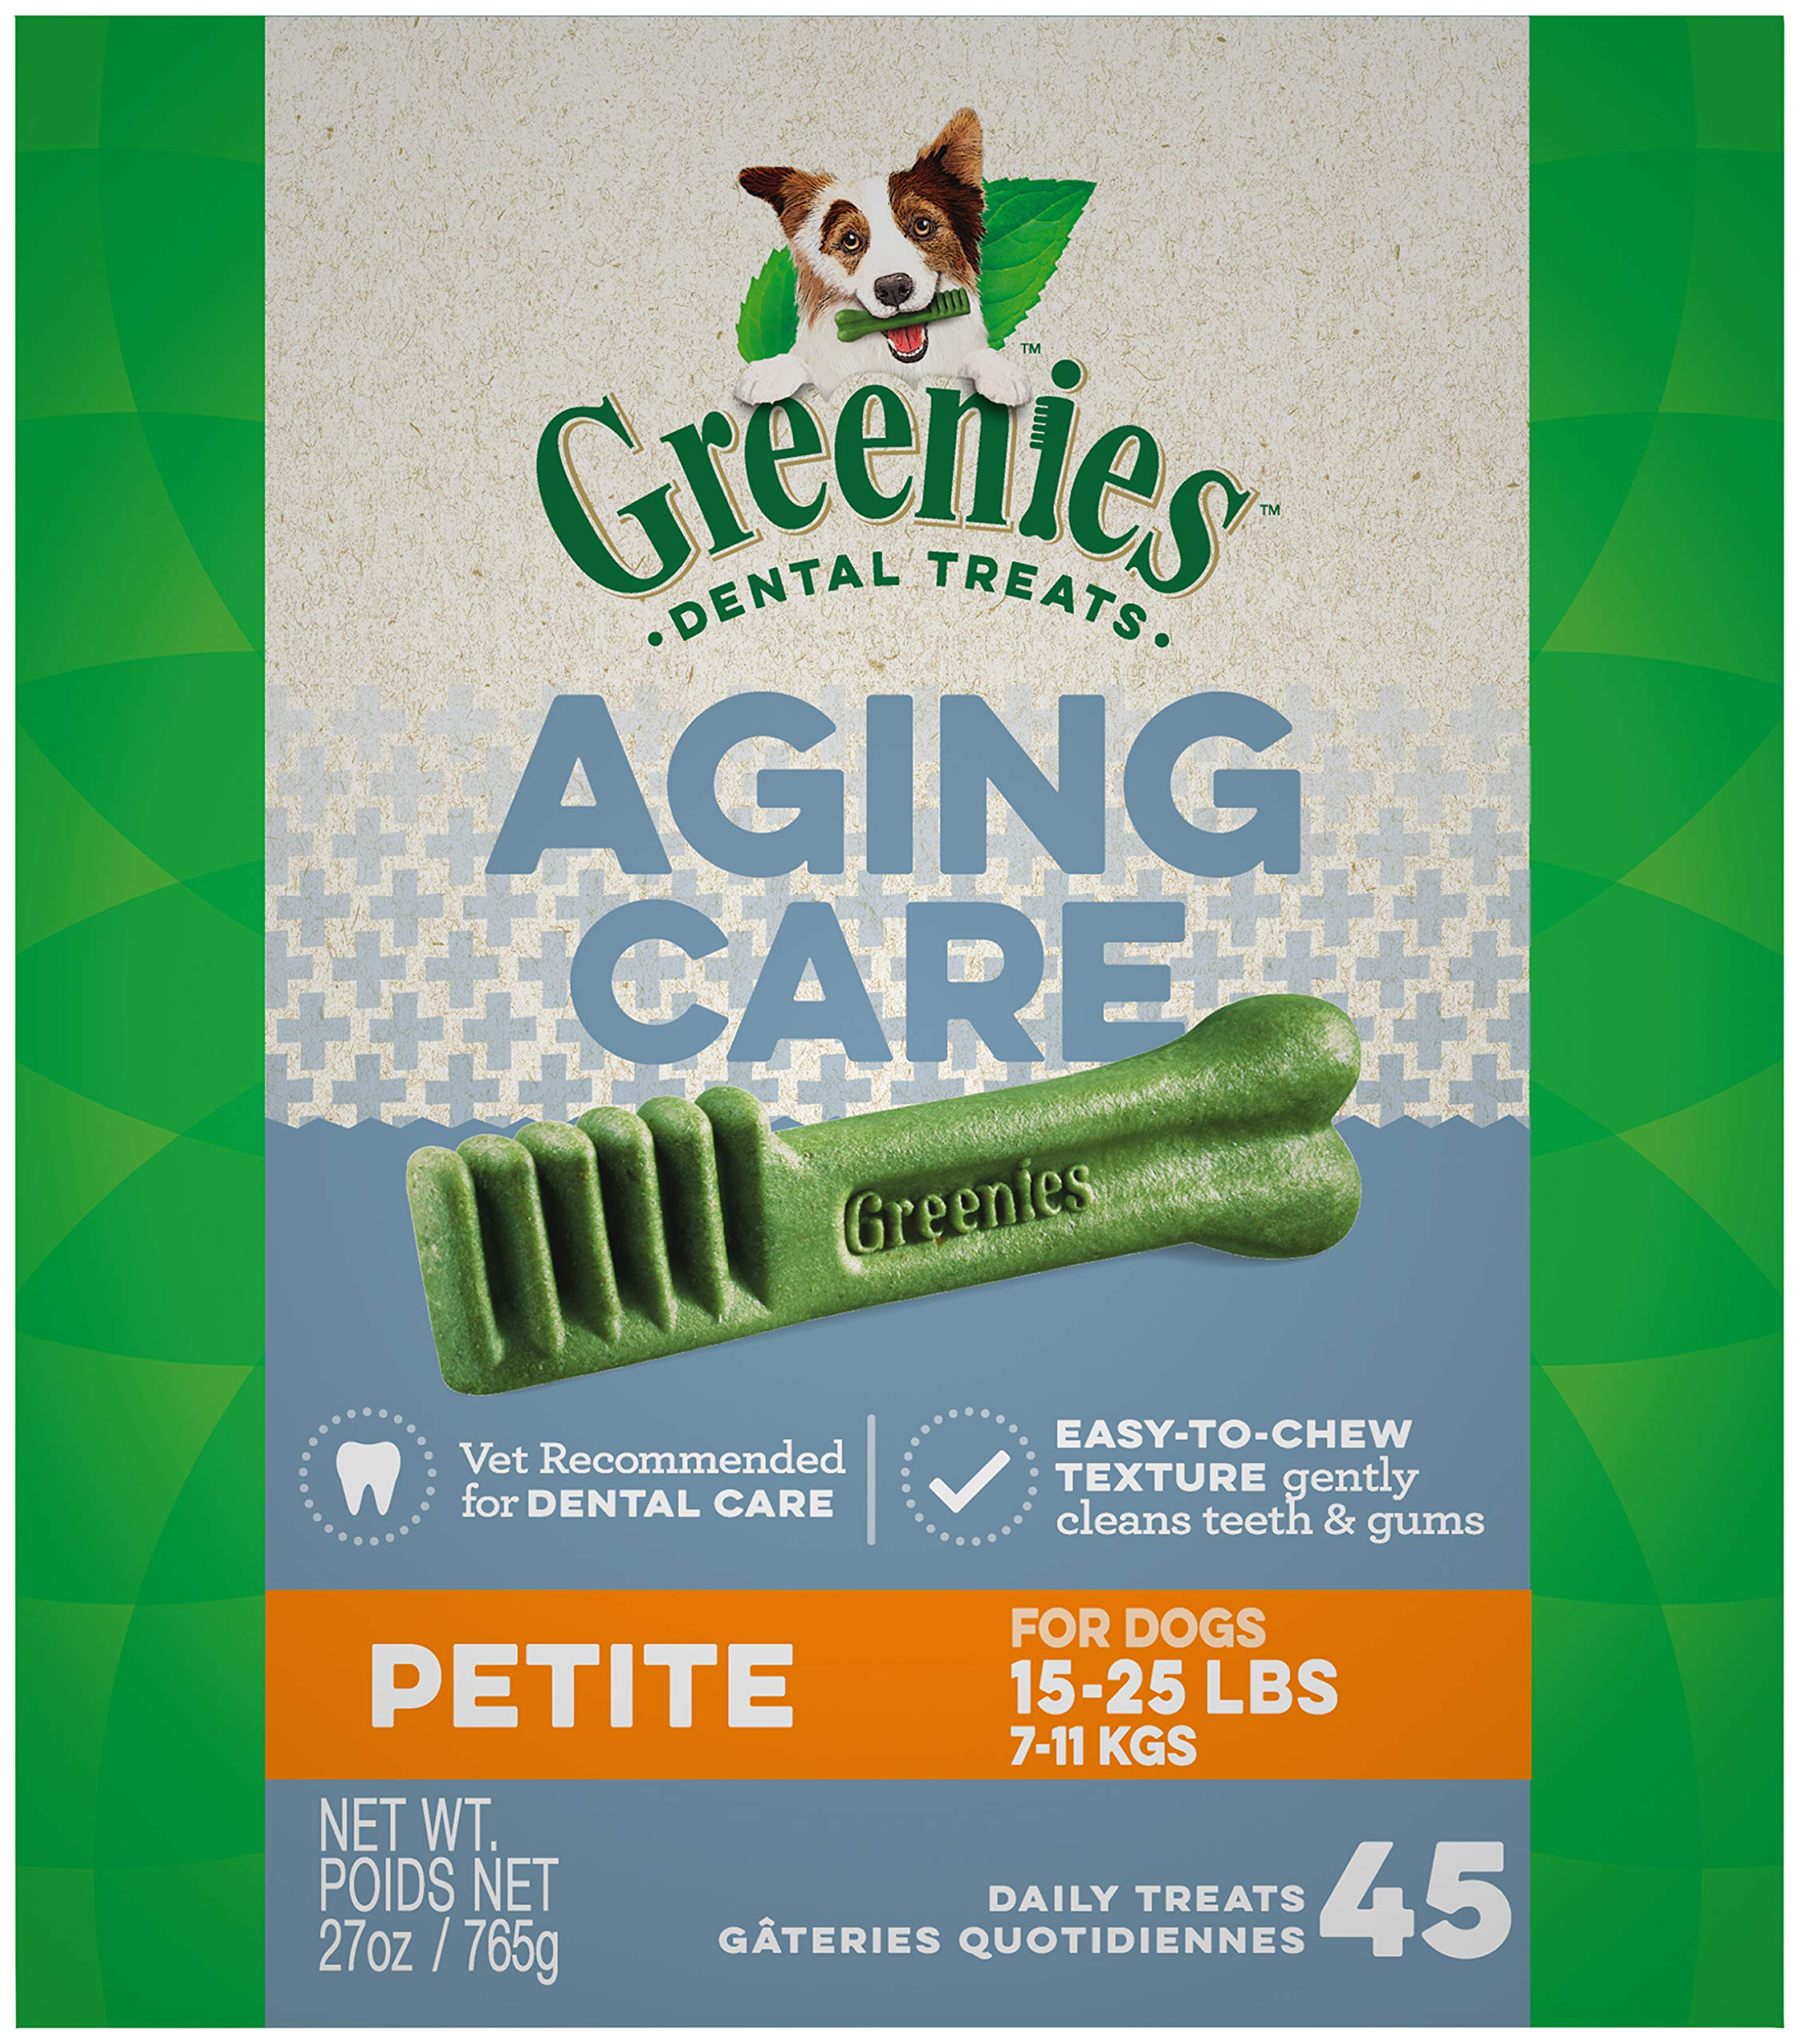 GREENIES Aging Care Petite Natural Dog Dental Care Chews Oral Health Dog Treats, 27 oz. Pack (45 Treats) by Greenies